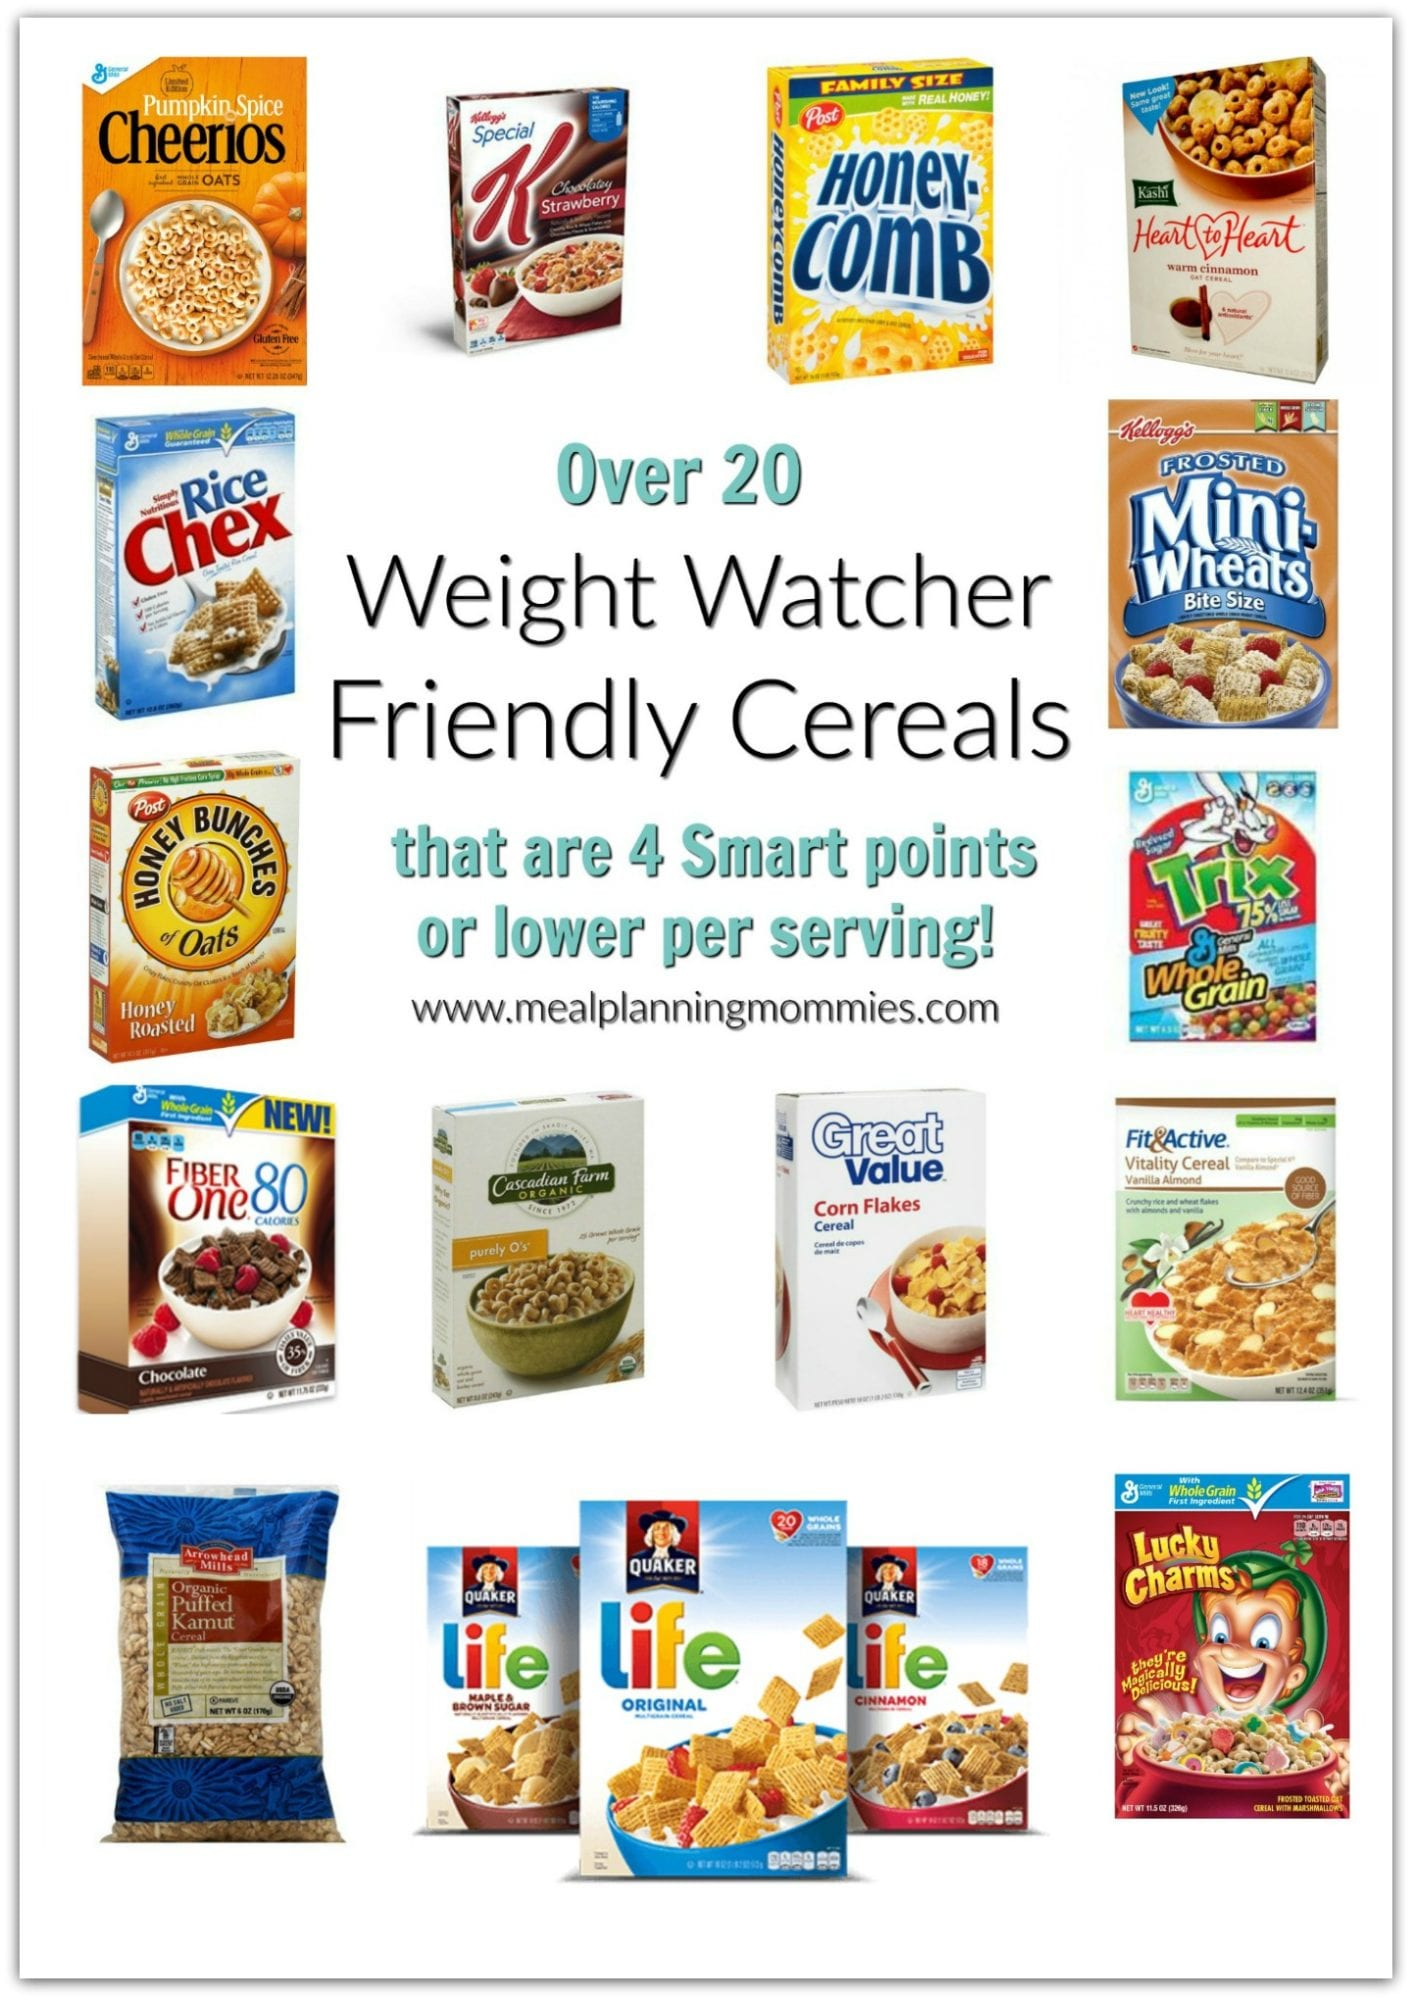 Discussion on this topic: 11 Best Brand Name Cereals for Weight , 11-best-brand-name-cereals-for-weight/